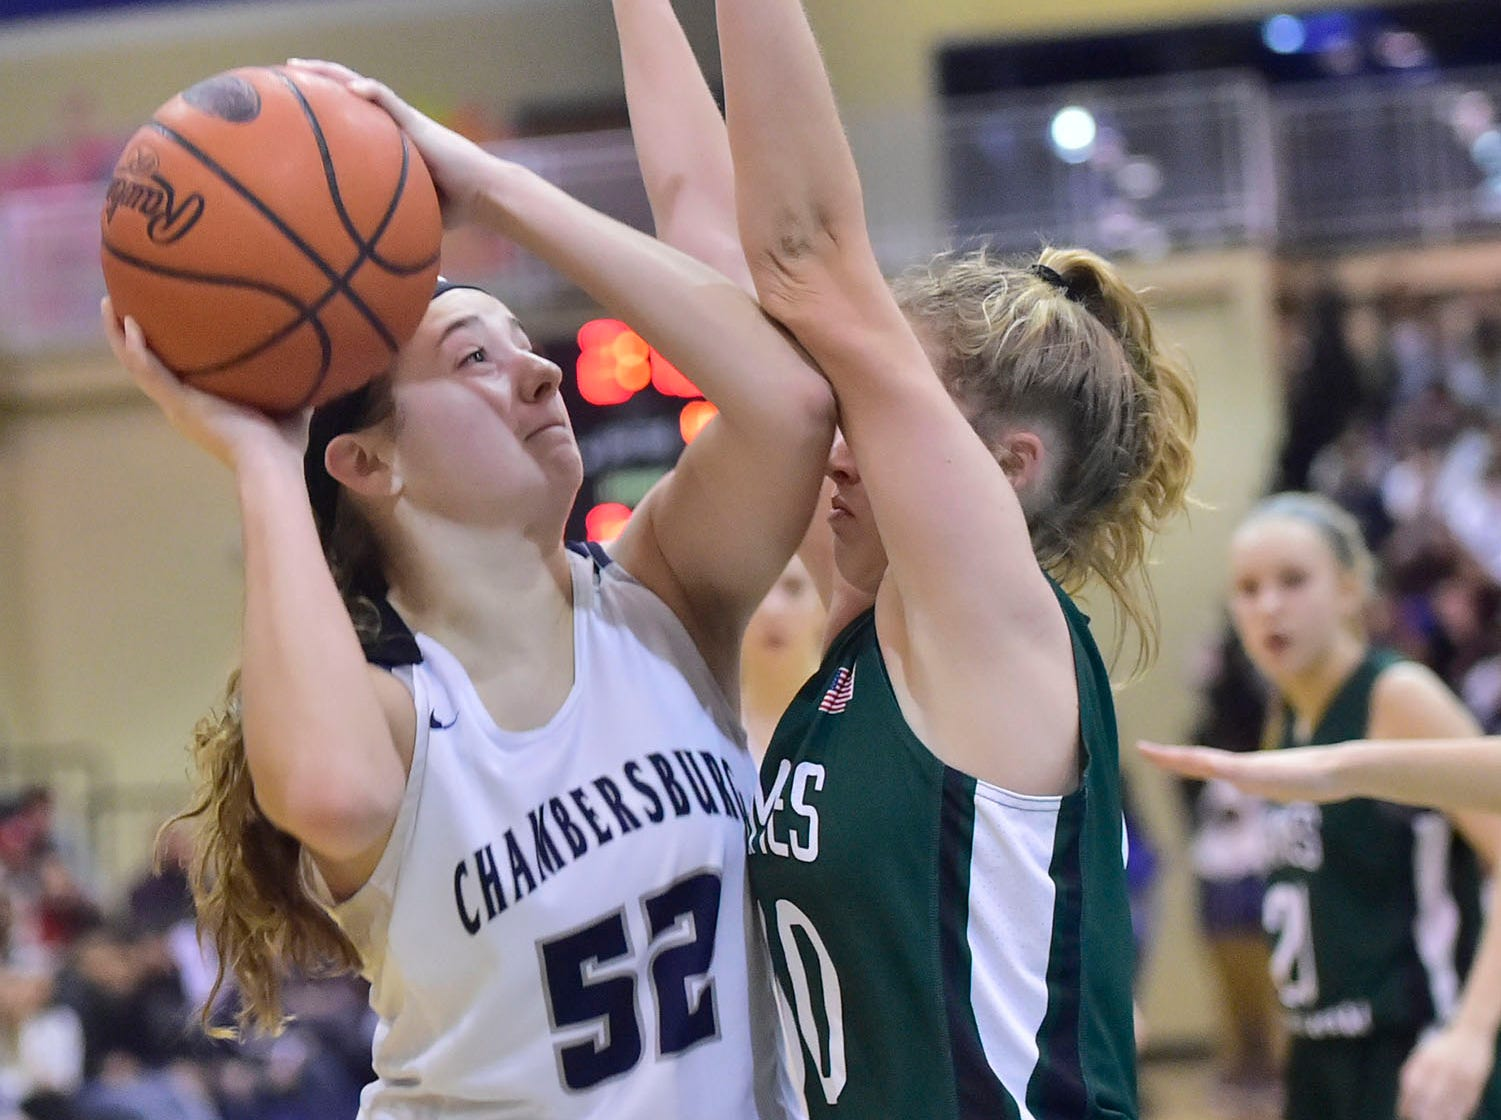 Chambersburg's Marlee Wrights (52) takes a shot near the basket. Chambersburg played James Buchanan girls during the Franklin County Tip-Off Tournament, Friday, Dec. 7, 2018.